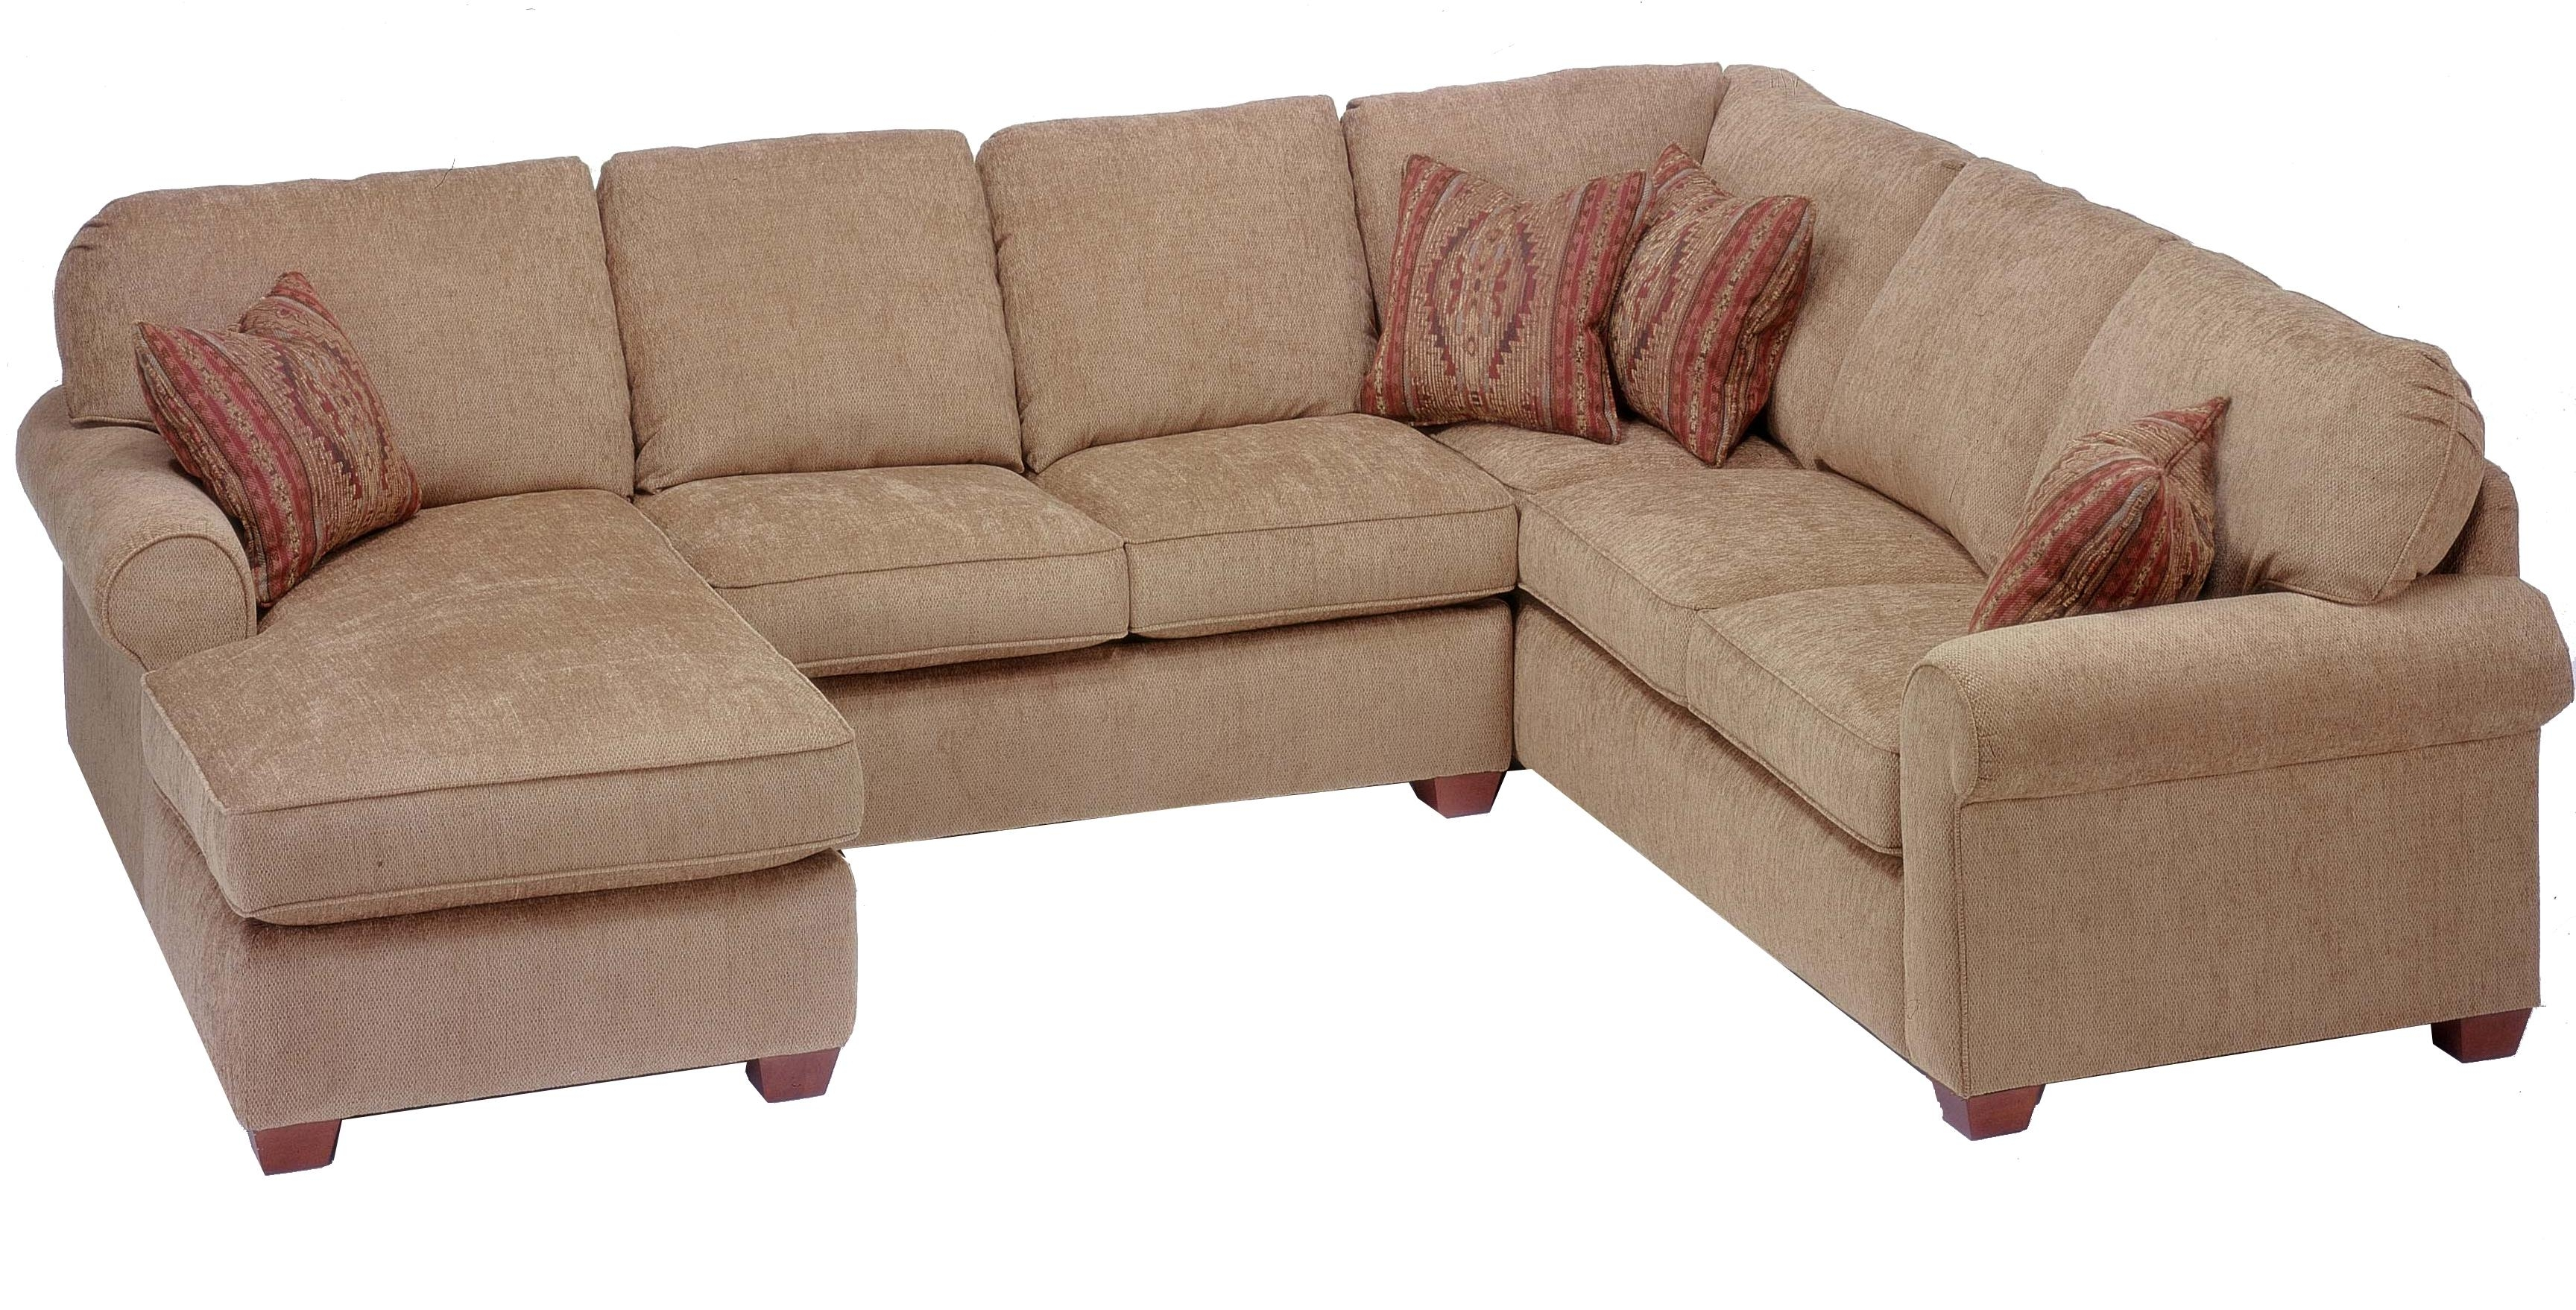 Flexsteel Thornton 3 Piece Sectional With Chaise - Ahfa - Sofa inside Blaine 4 Piece Sectionals (Image 12 of 30)